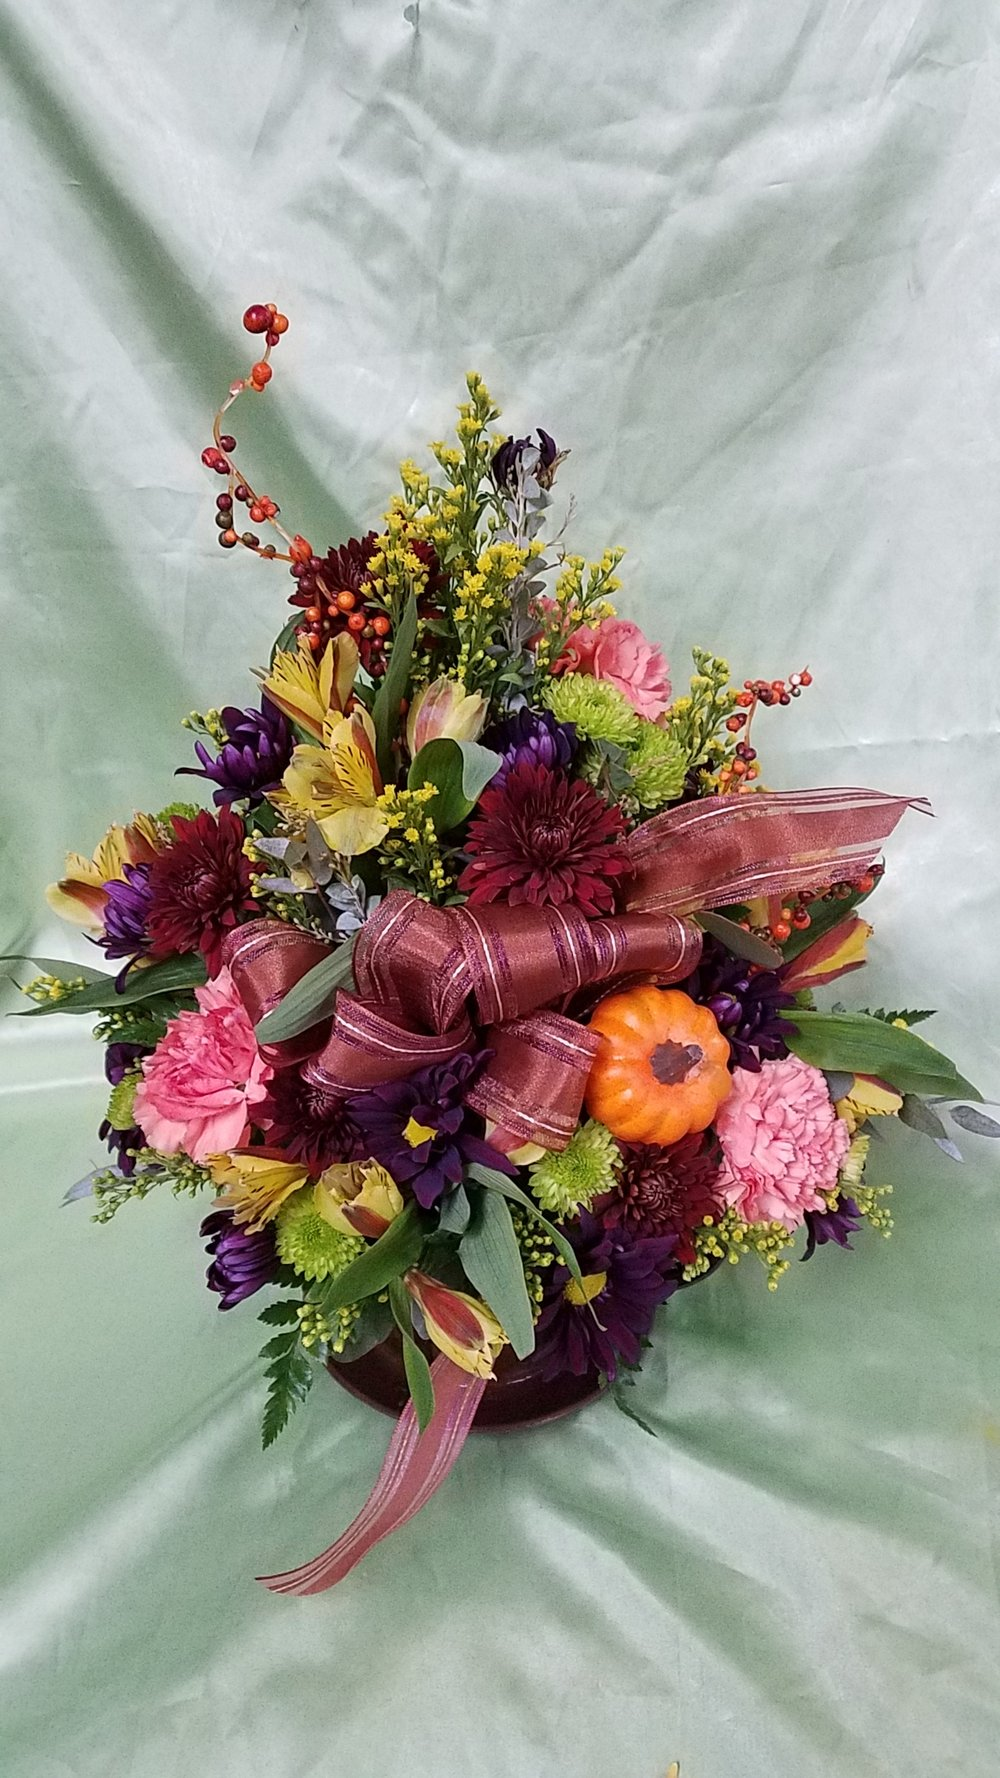 Orchard hills floral gifts 20171101113654g izmirmasajfo